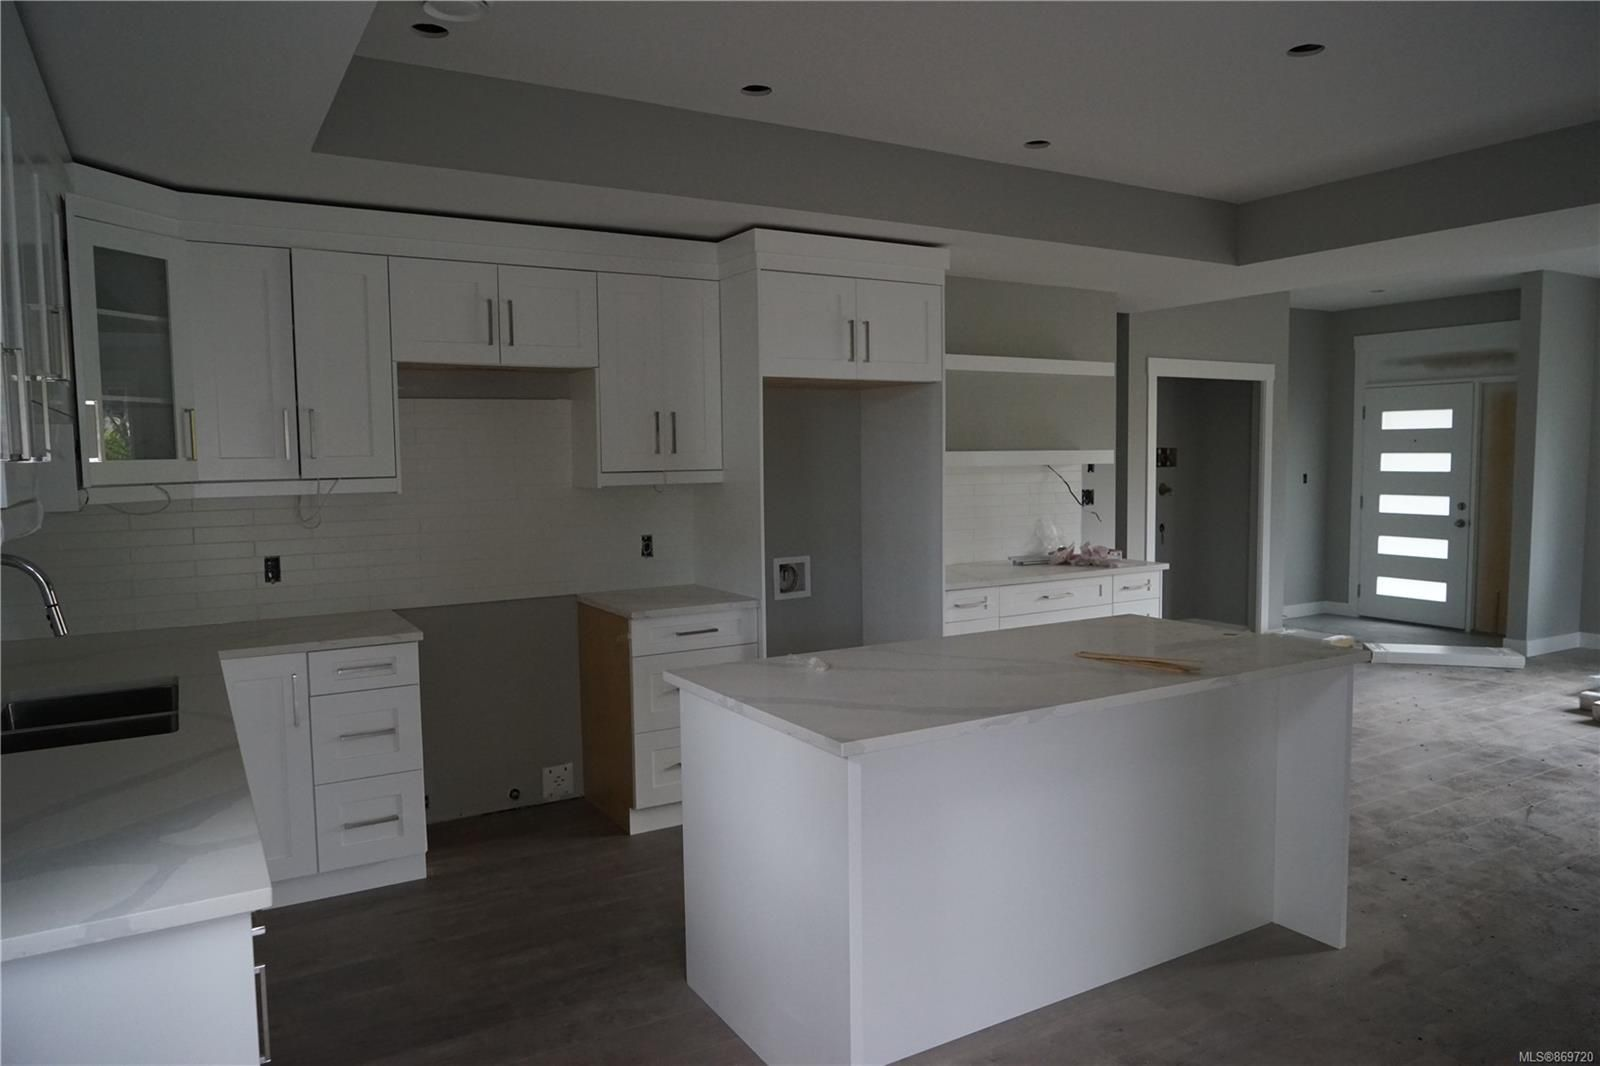 Photo 16: Photos: 770 Bruce Ave in : Na South Nanaimo House for sale (Nanaimo)  : MLS®# 869720